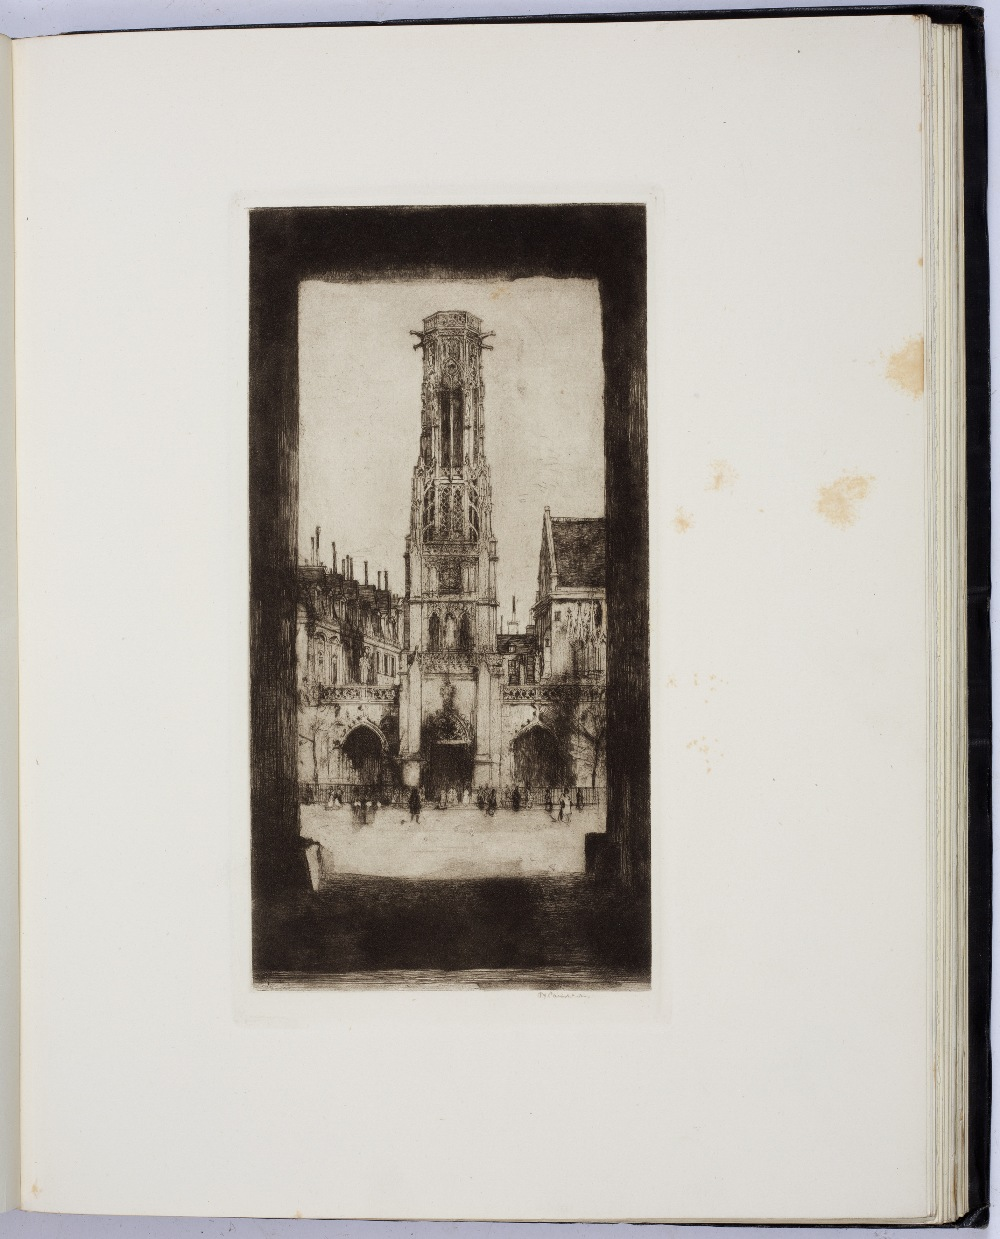 HIND, Arthur M, The Etchings of D.Y. Cameron, Halton & Truscott Smith, London 1924. 4to. Gilt tooled - Image 5 of 5